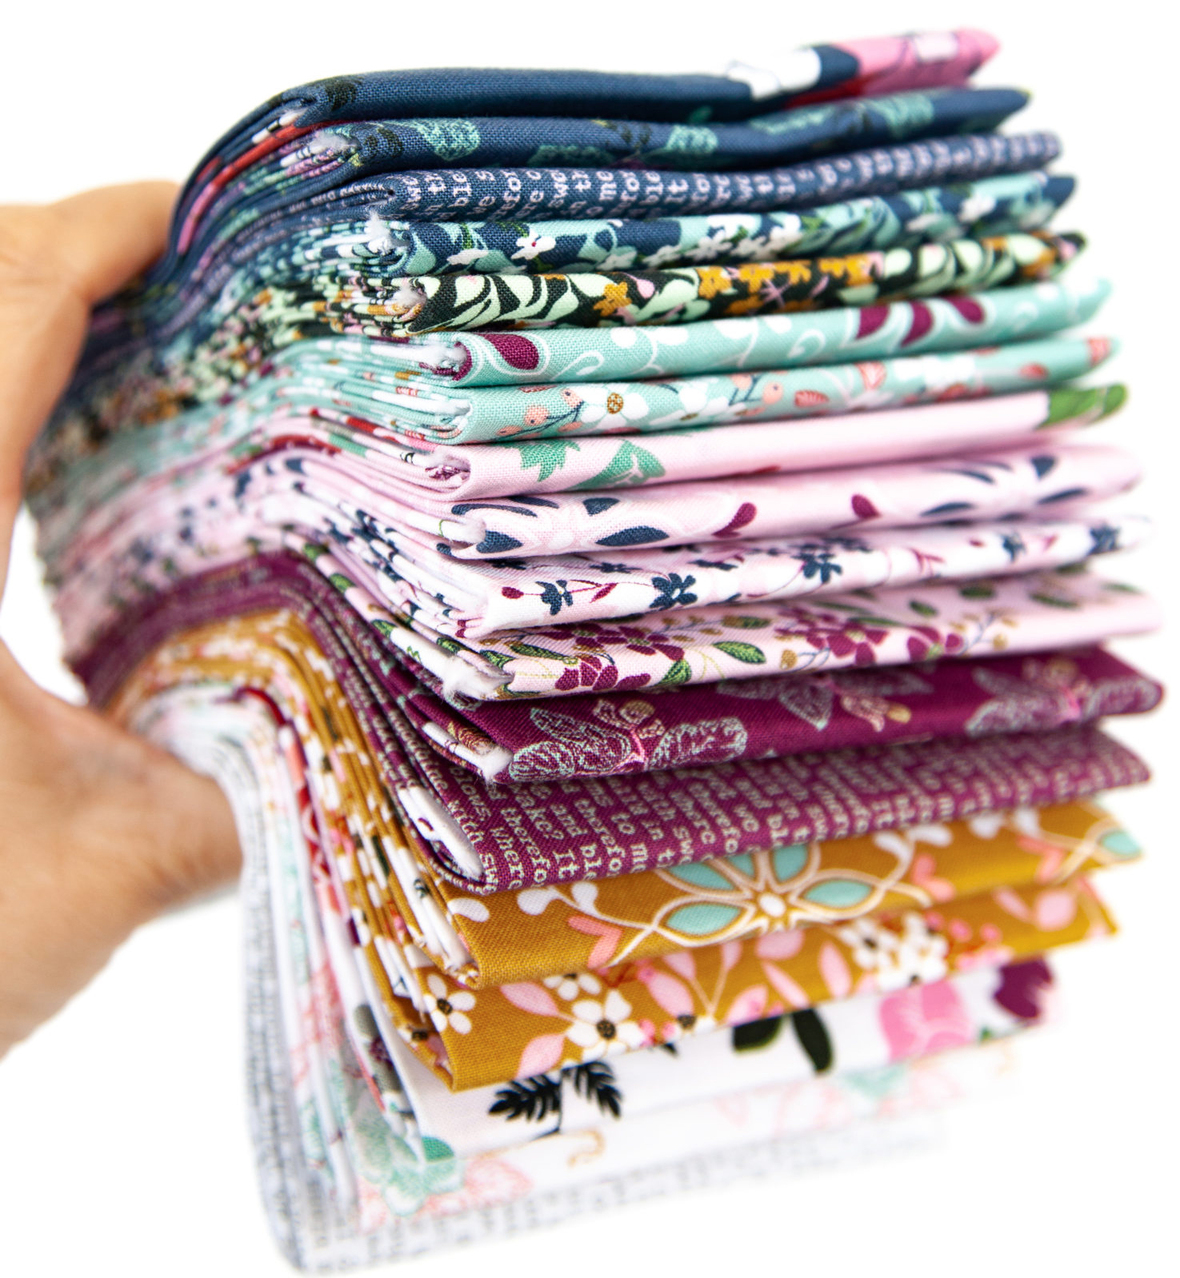 Whimsical Romance fabric stack